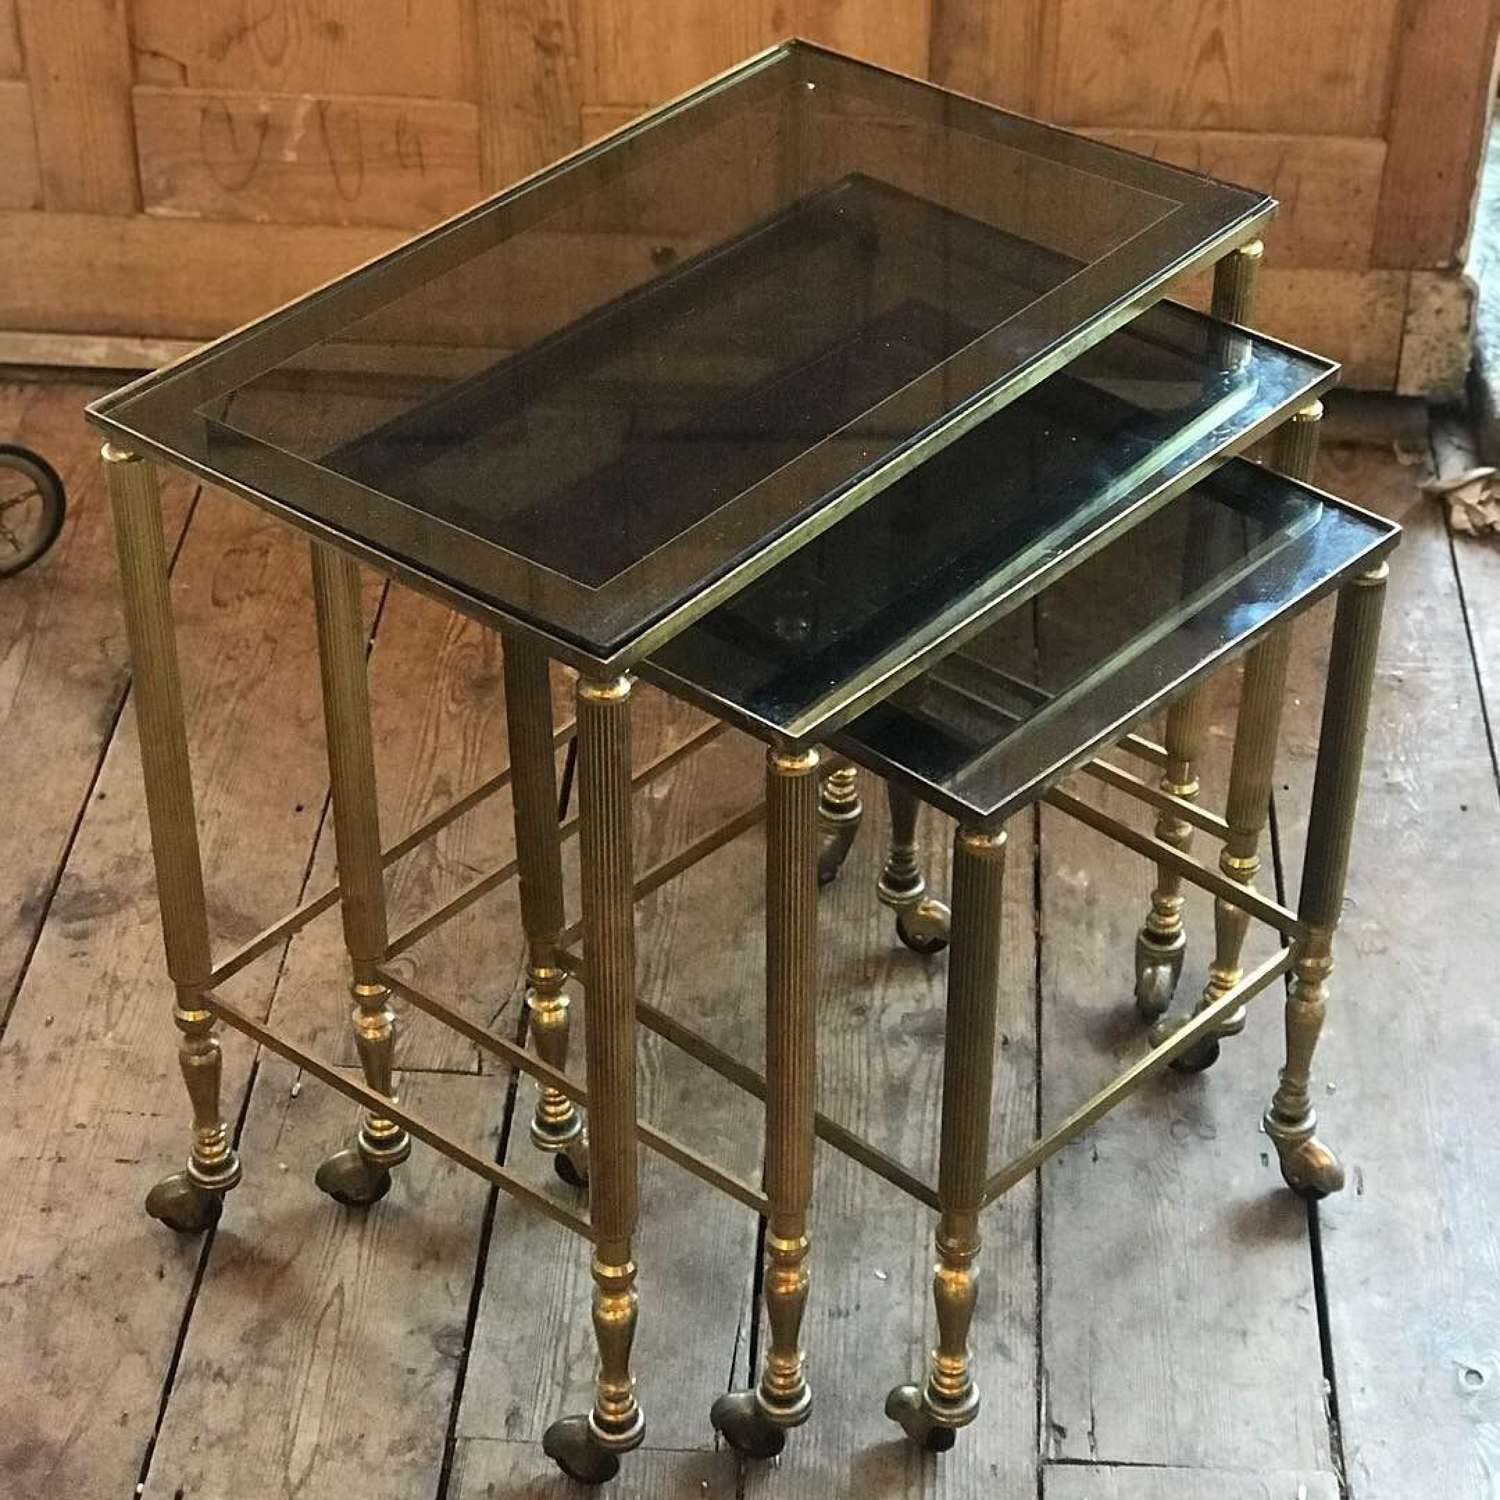 20th Century Brass nest of tables on wheels